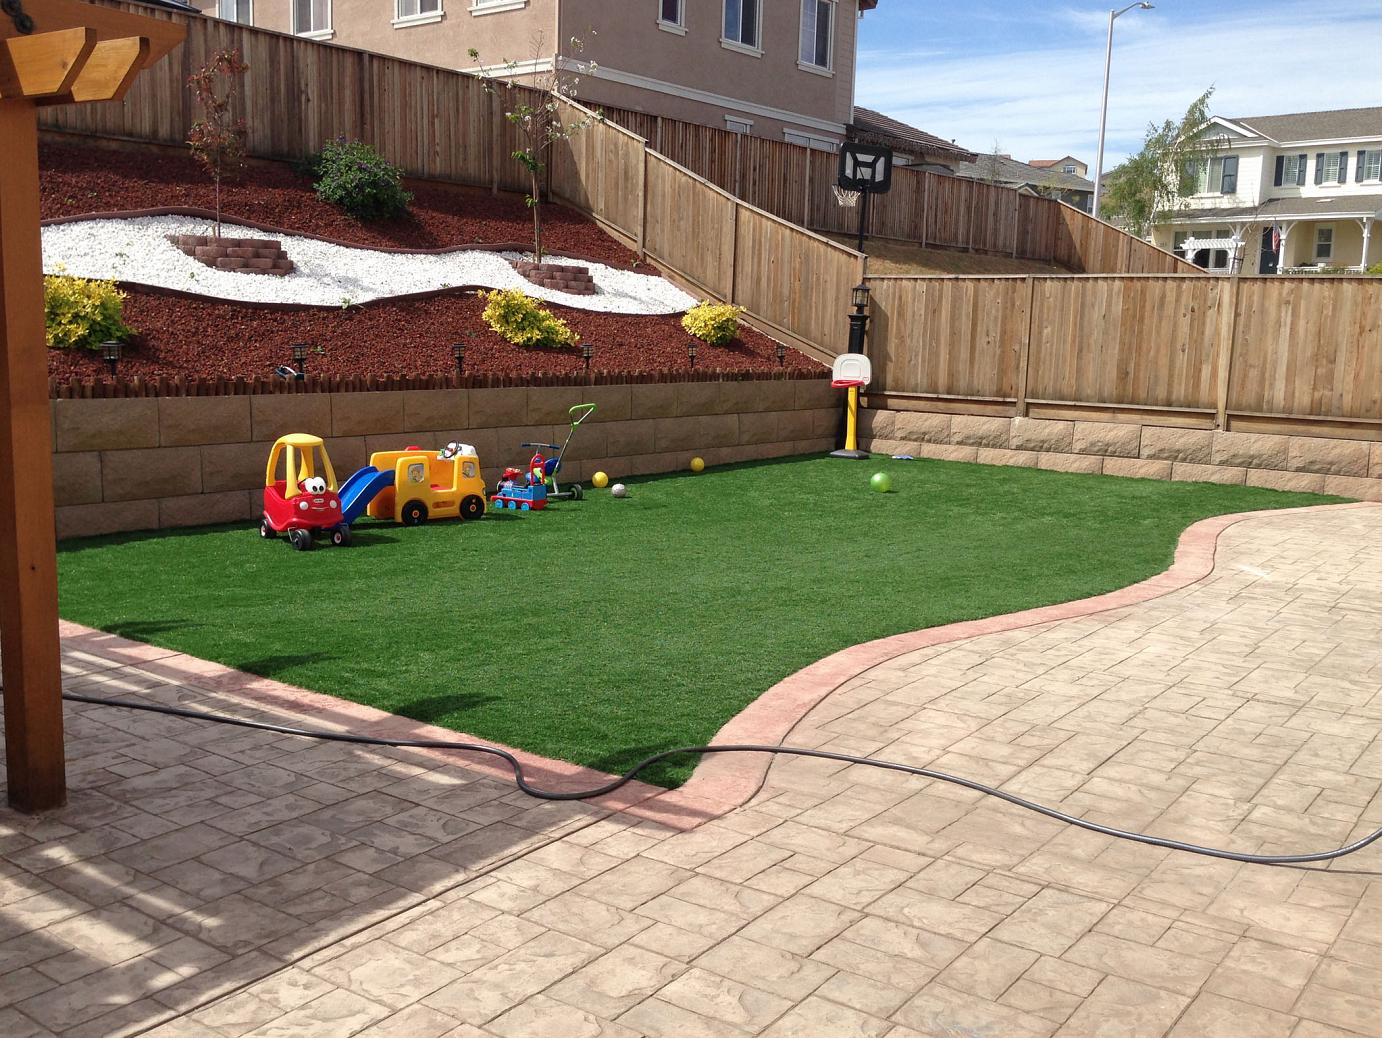 Synthetic Turf Hollandale, Wisconsin Playground Flooring ... on Artificial Turf Backyard Ideas id=97263